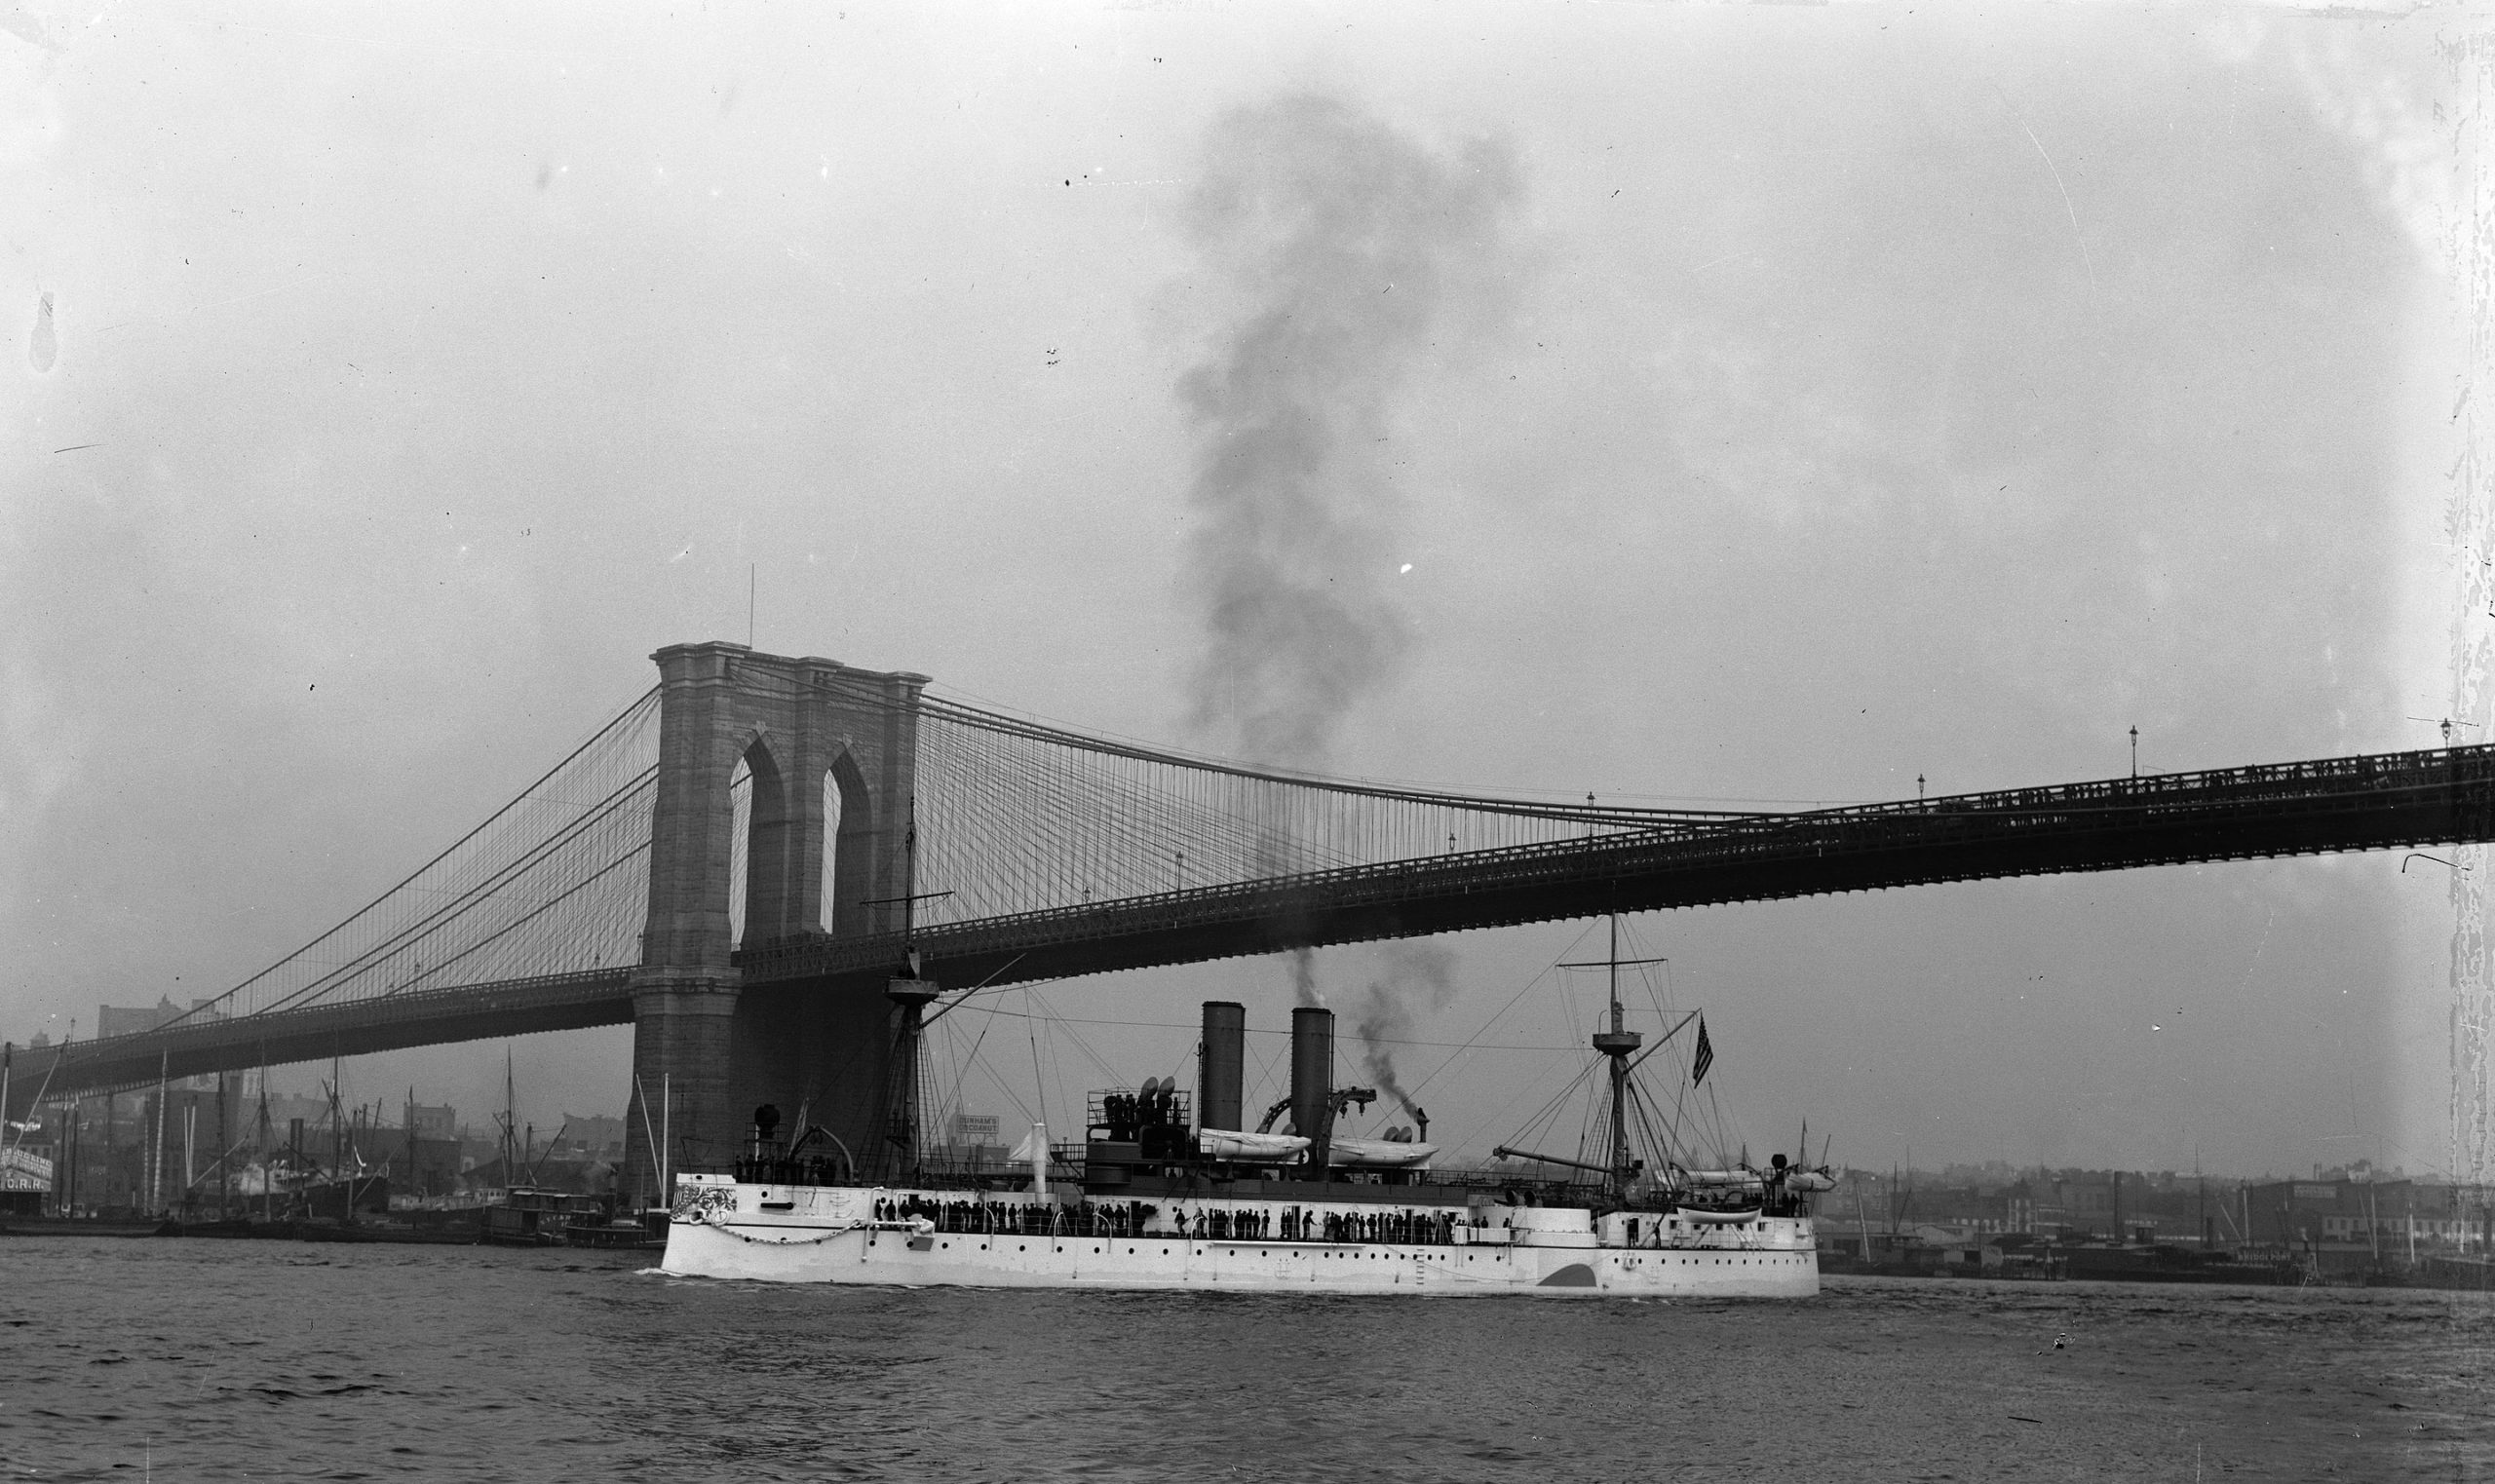 The USS Maine in better times, passing under the Brooklyn Bridge